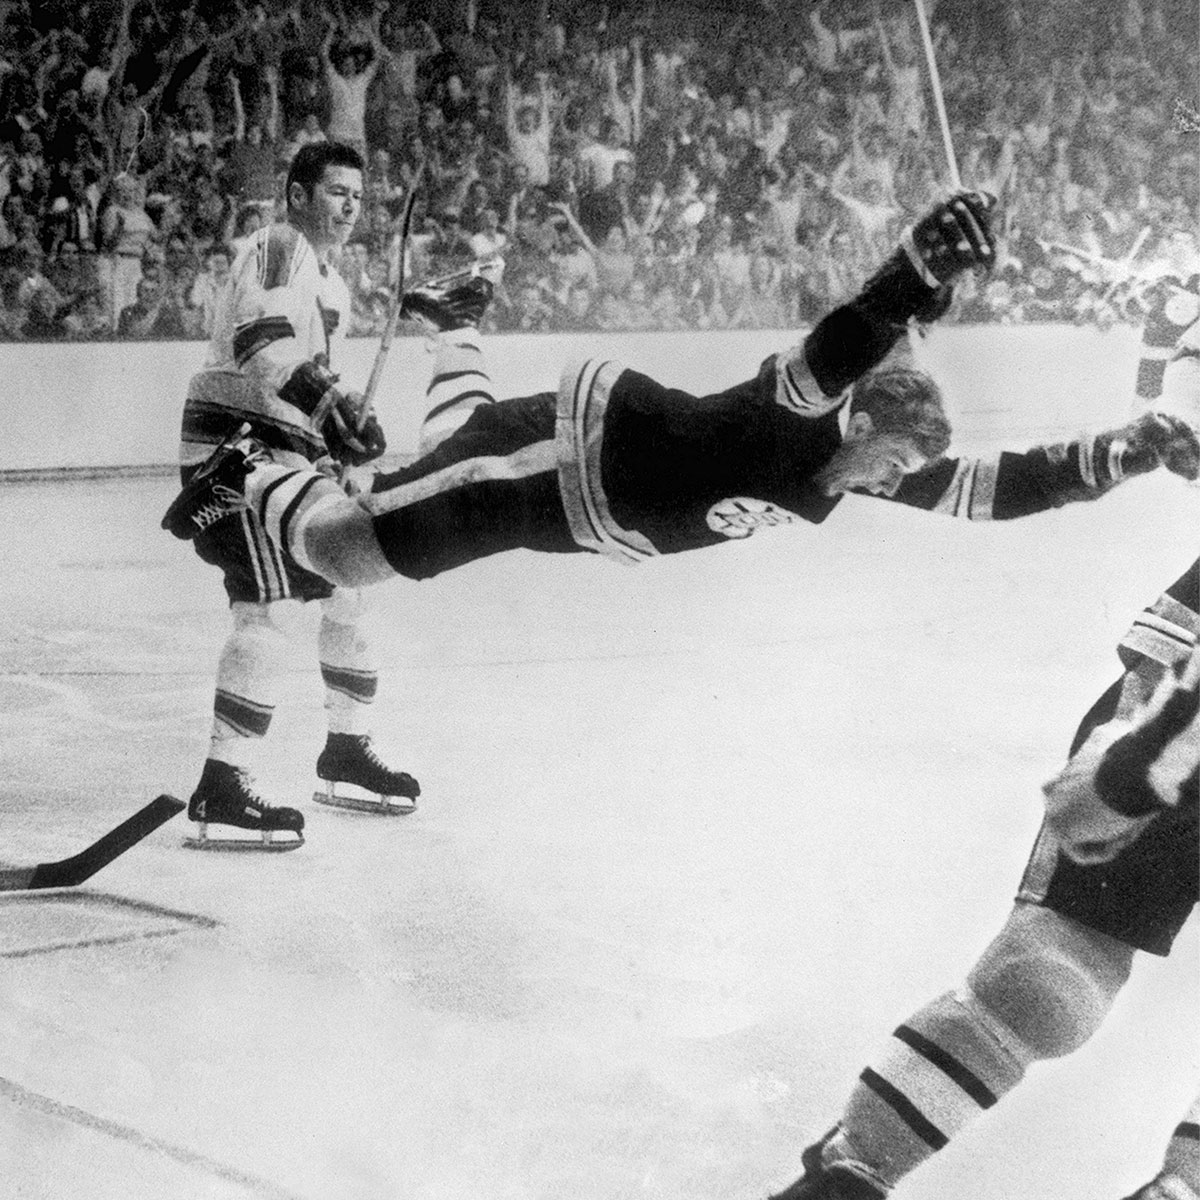 50 years ago today, one of the most iconic pictures in sports history was taken. #NHLBruins